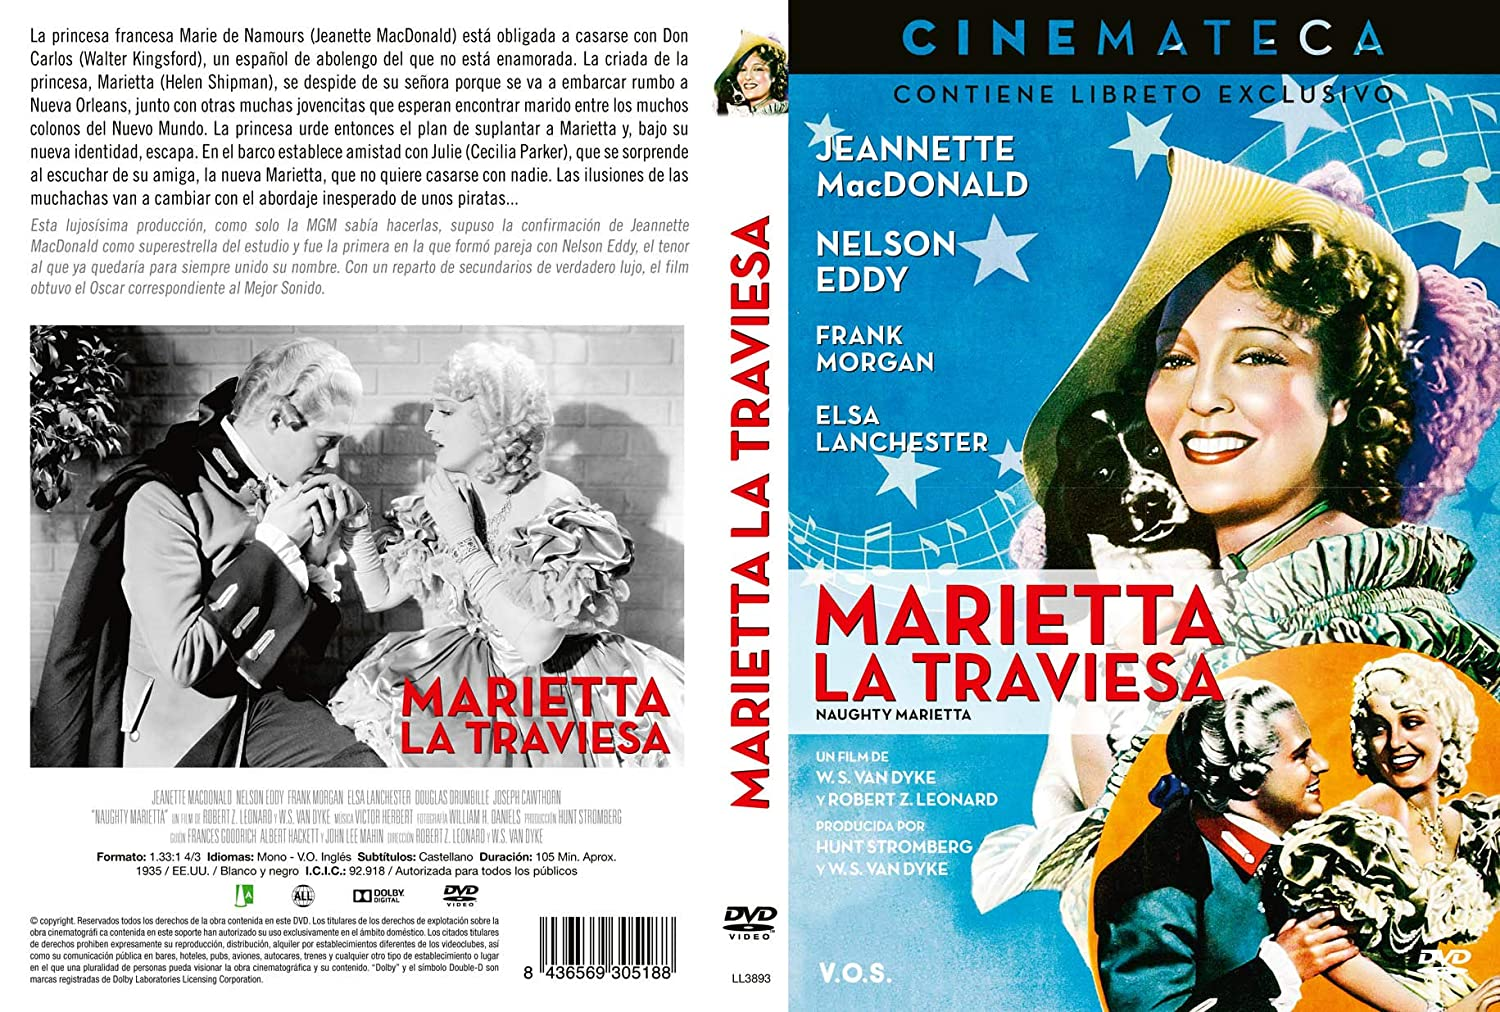 Amazon.com: Marietta La Traviesa - Naughty Marietta (Non USA Format): Movies & TV